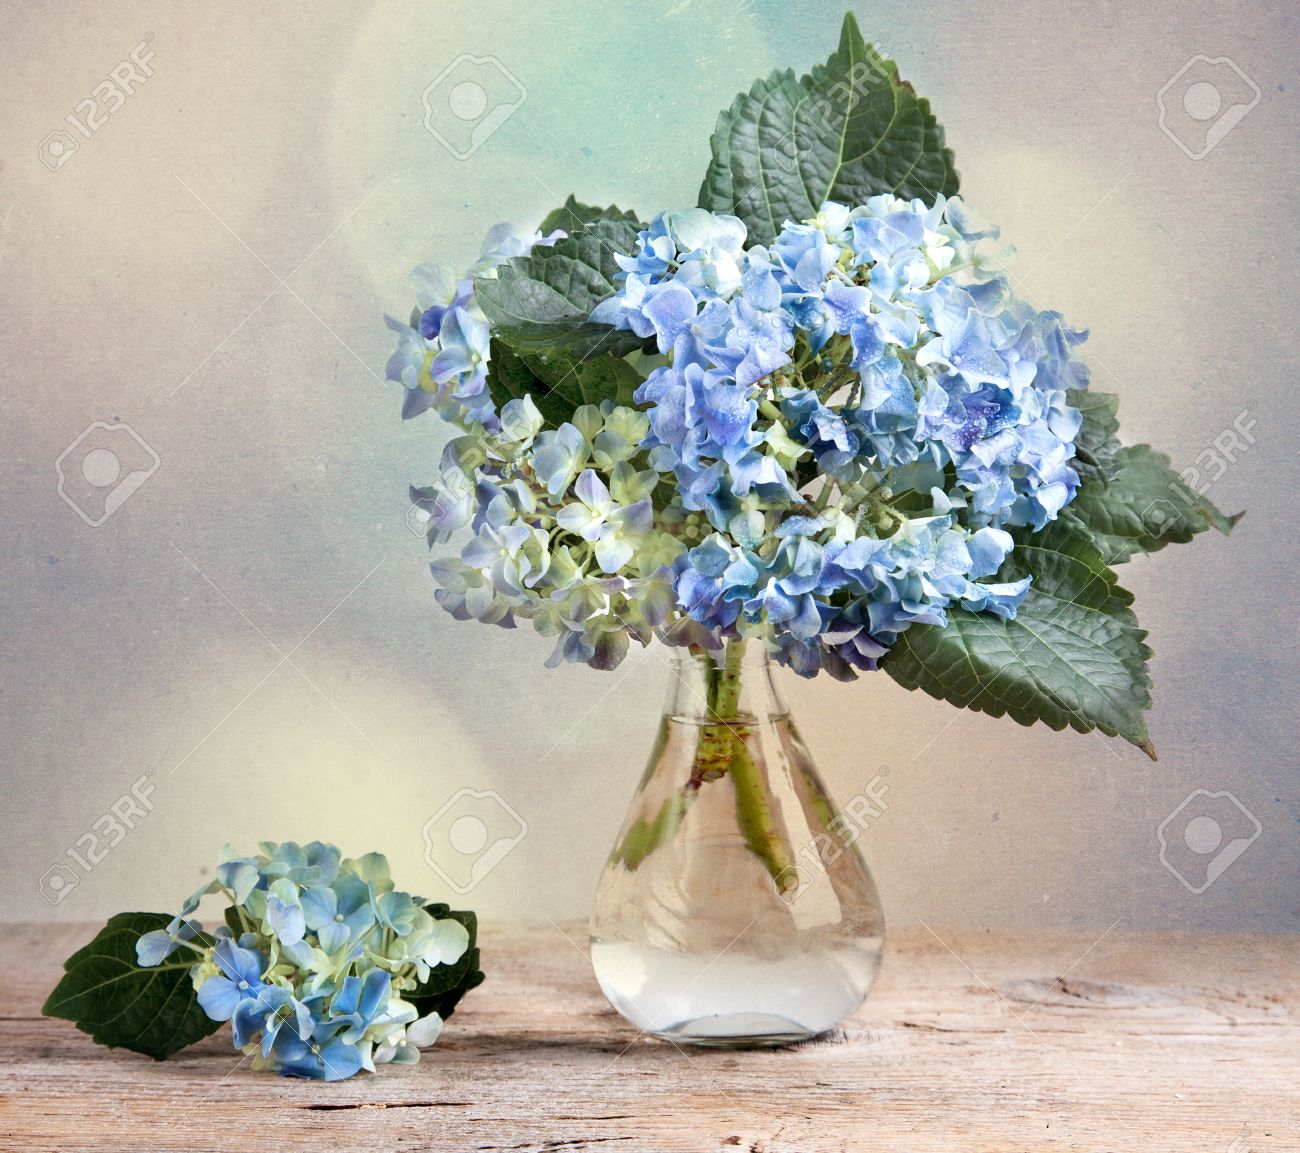 Still life with blue hortensia flowers in glass vase stock photo still life with blue hortensia flowers in glass vase stock photo 9419608 reviewsmspy